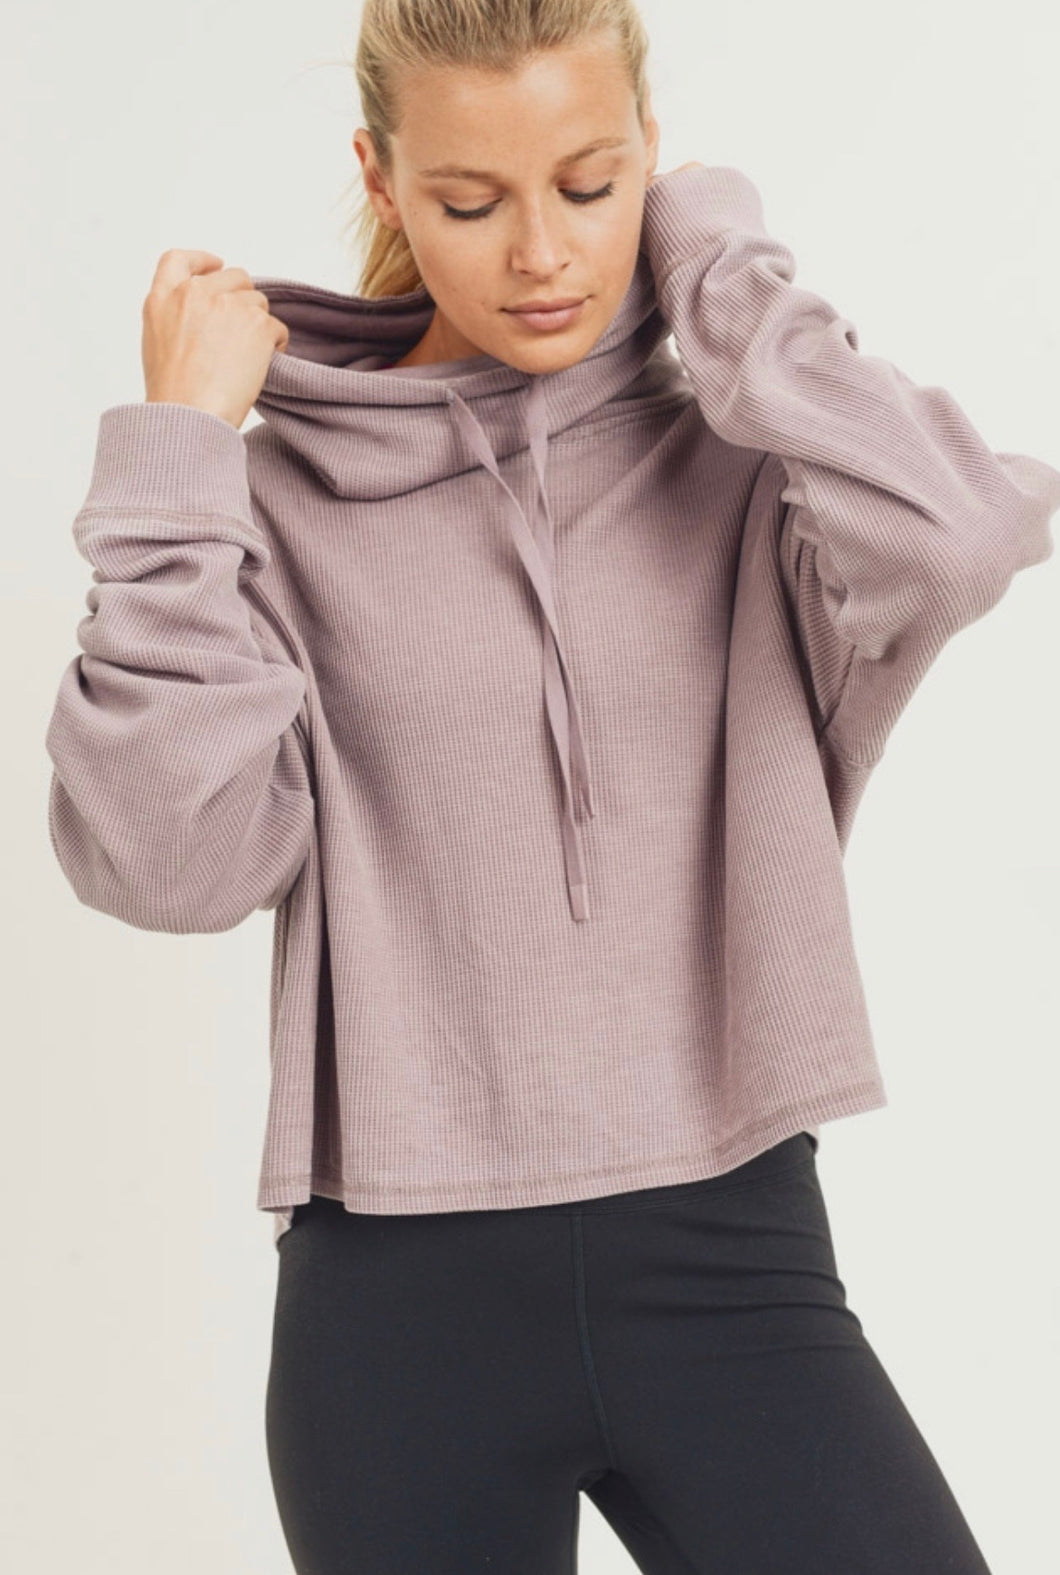 1651 - Boxy Mineral Washed Cowl Neck Pullover